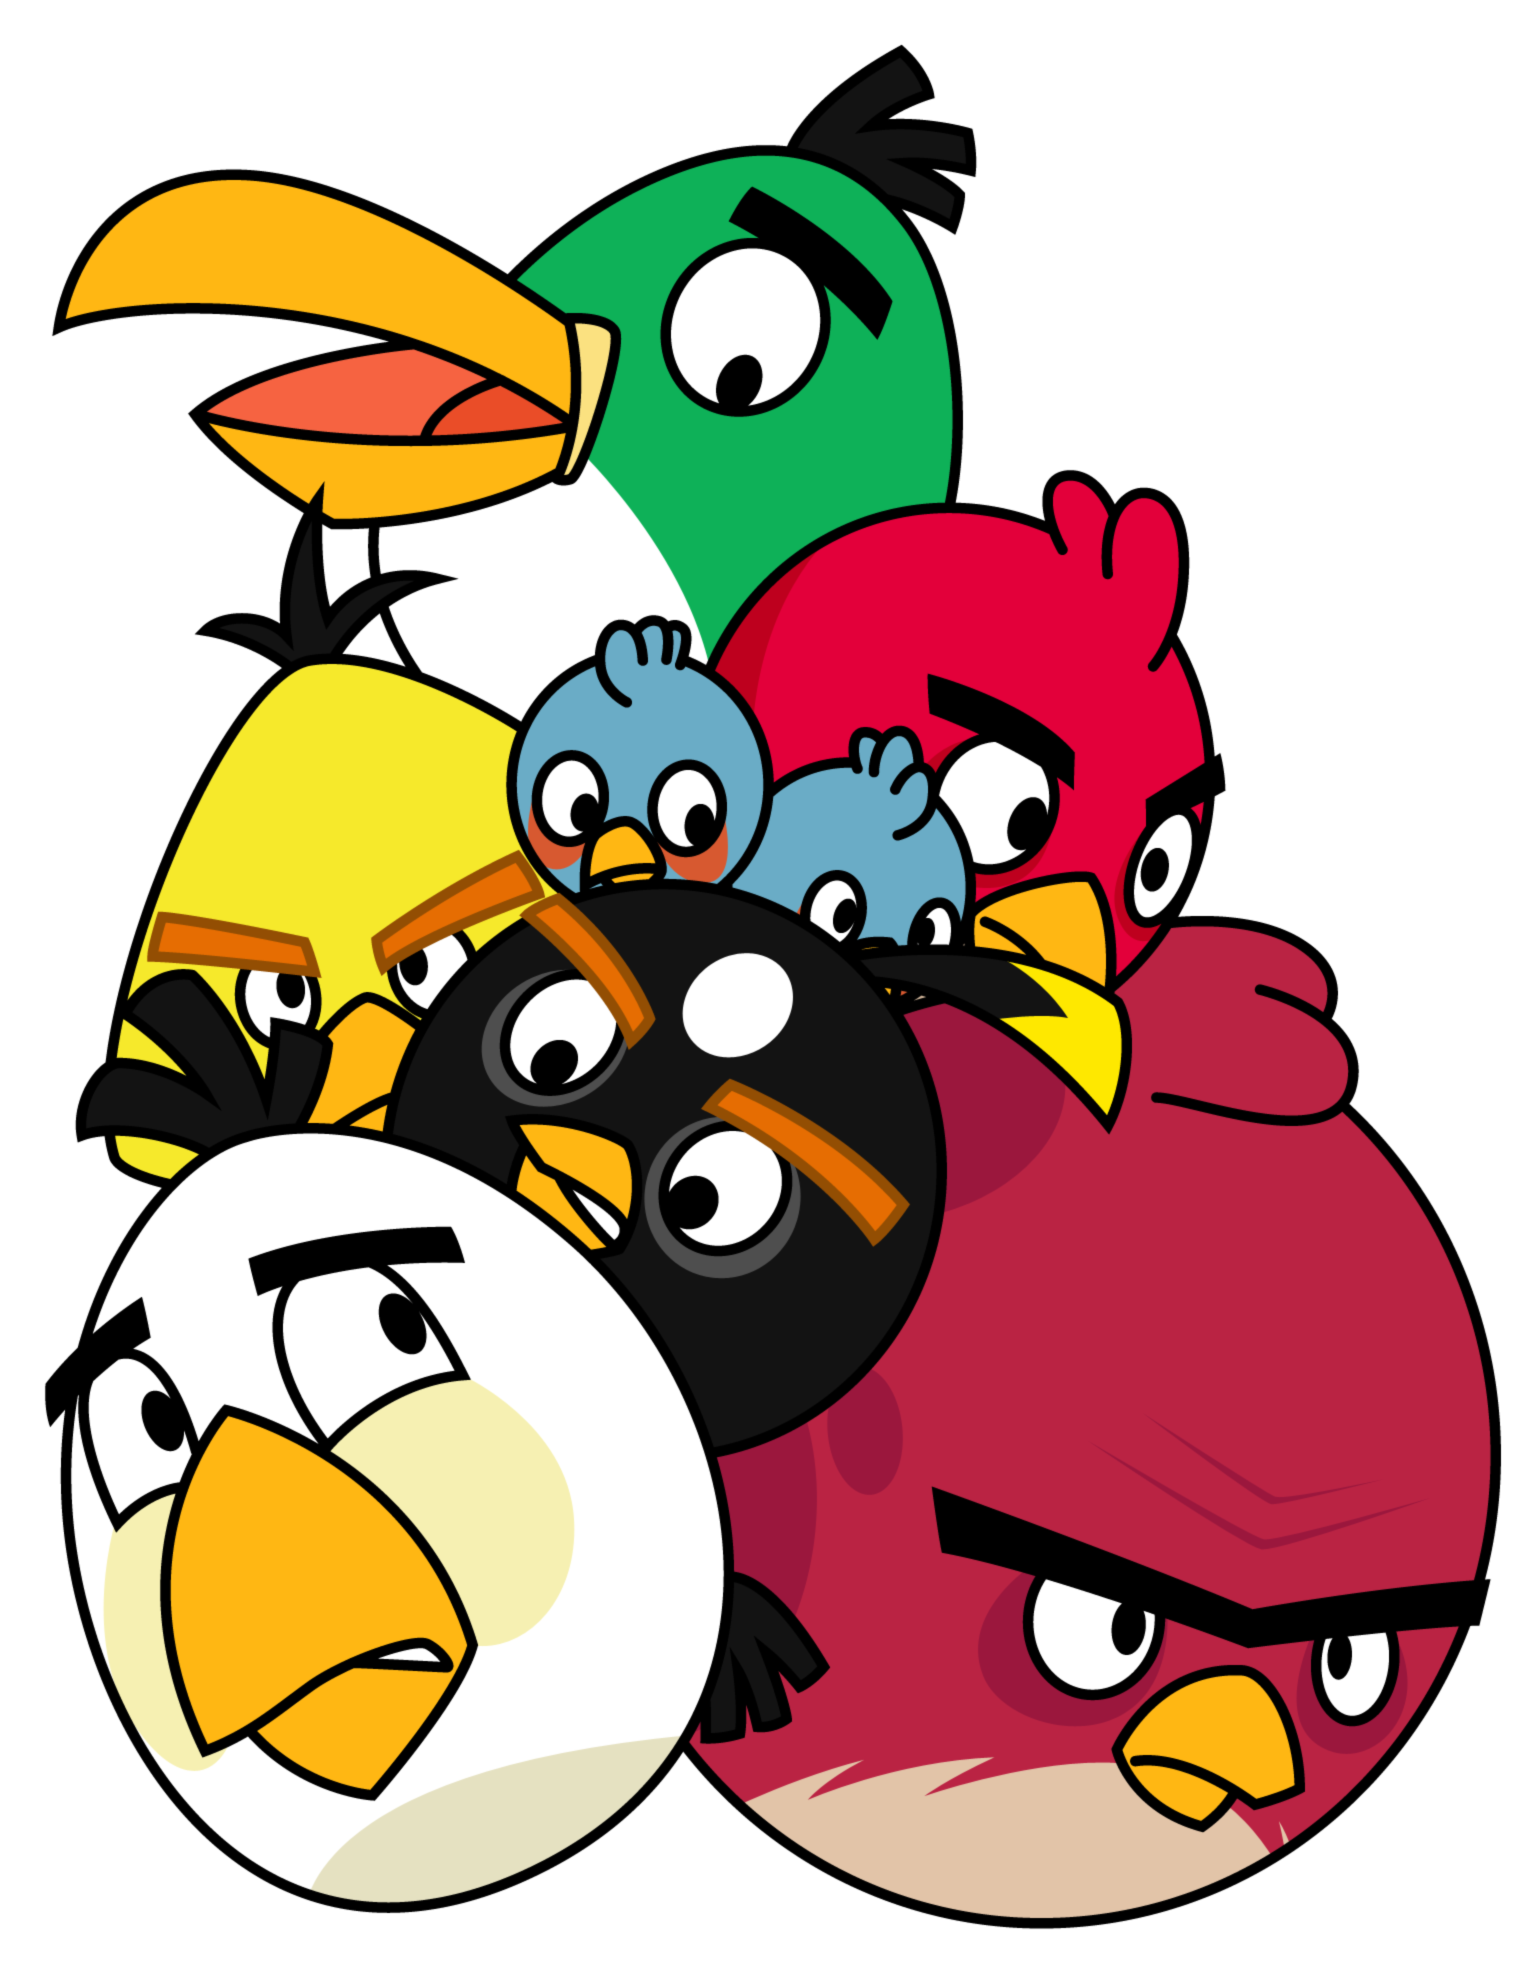 Craftsman house clipart clipart black and white Pile of Angry Birds by Gav-Imp.deviantart.com | Angry Birds ... clipart black and white